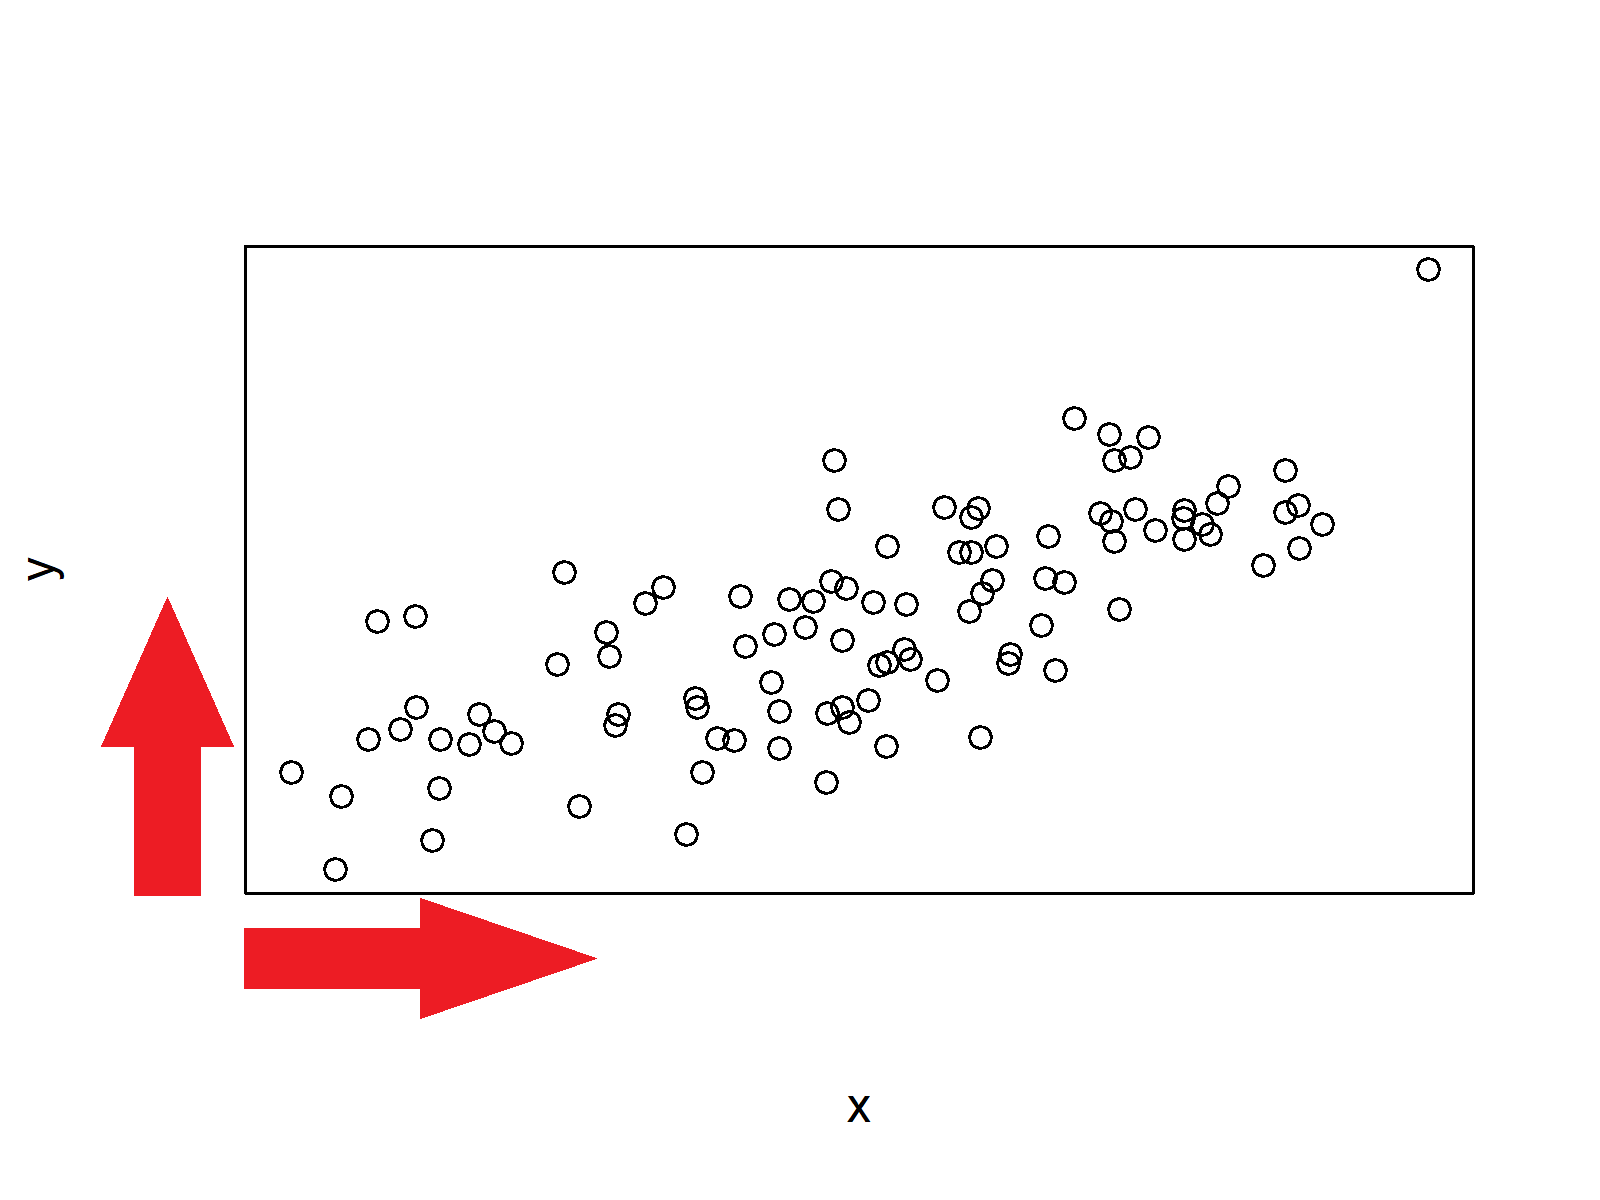 no values on axes in base r plot